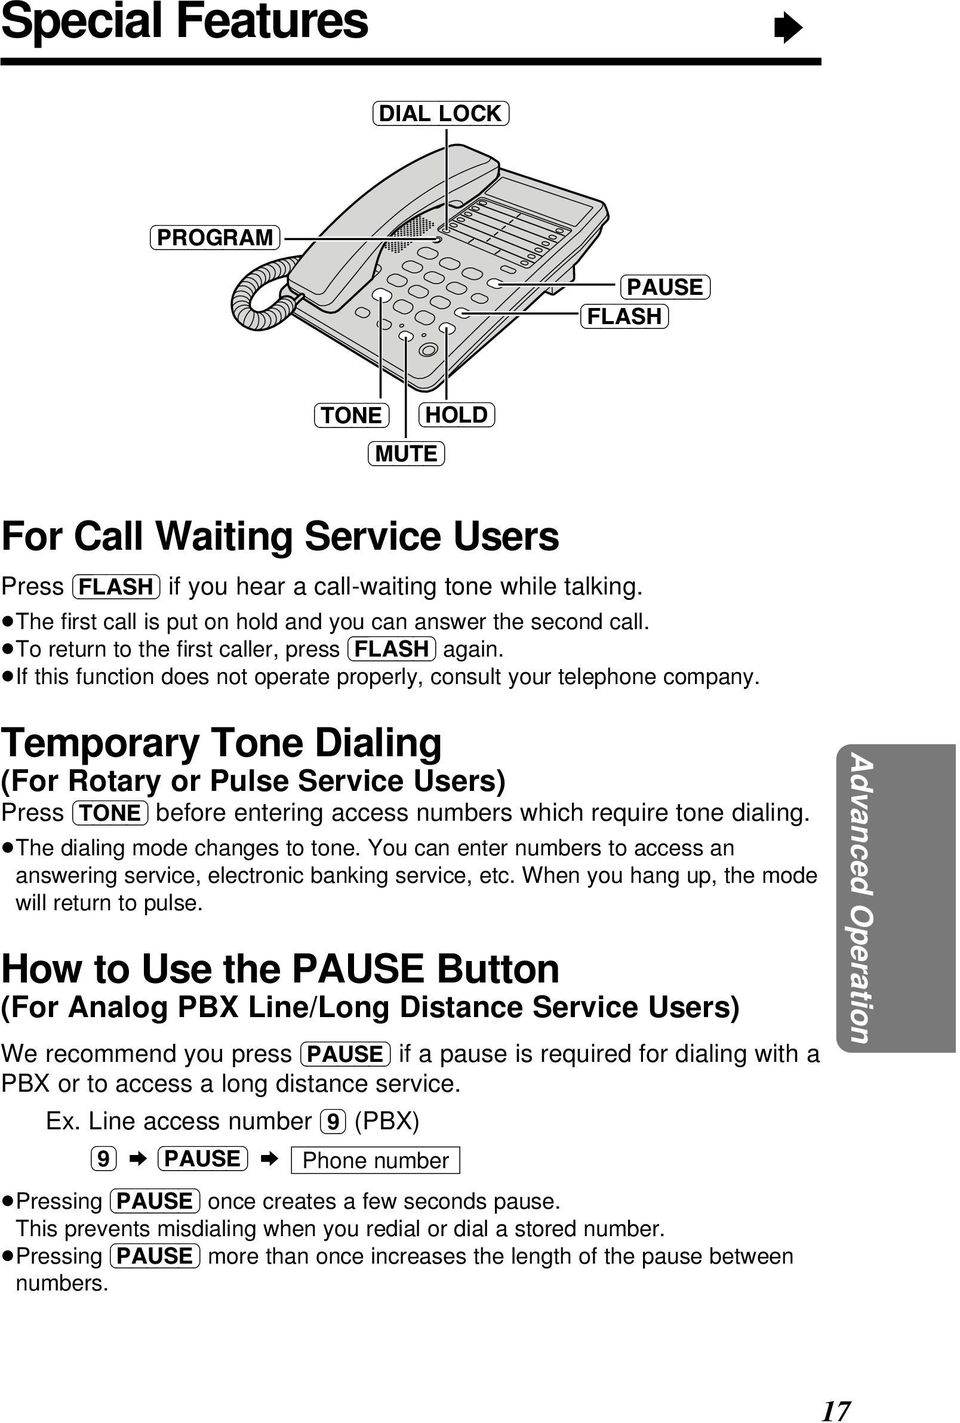 Temporary Tone Dialing (For Rotary or Pulse Service Users) (TONE) before entering access numbers which require tone dialing. The dialing mode changes to tone.